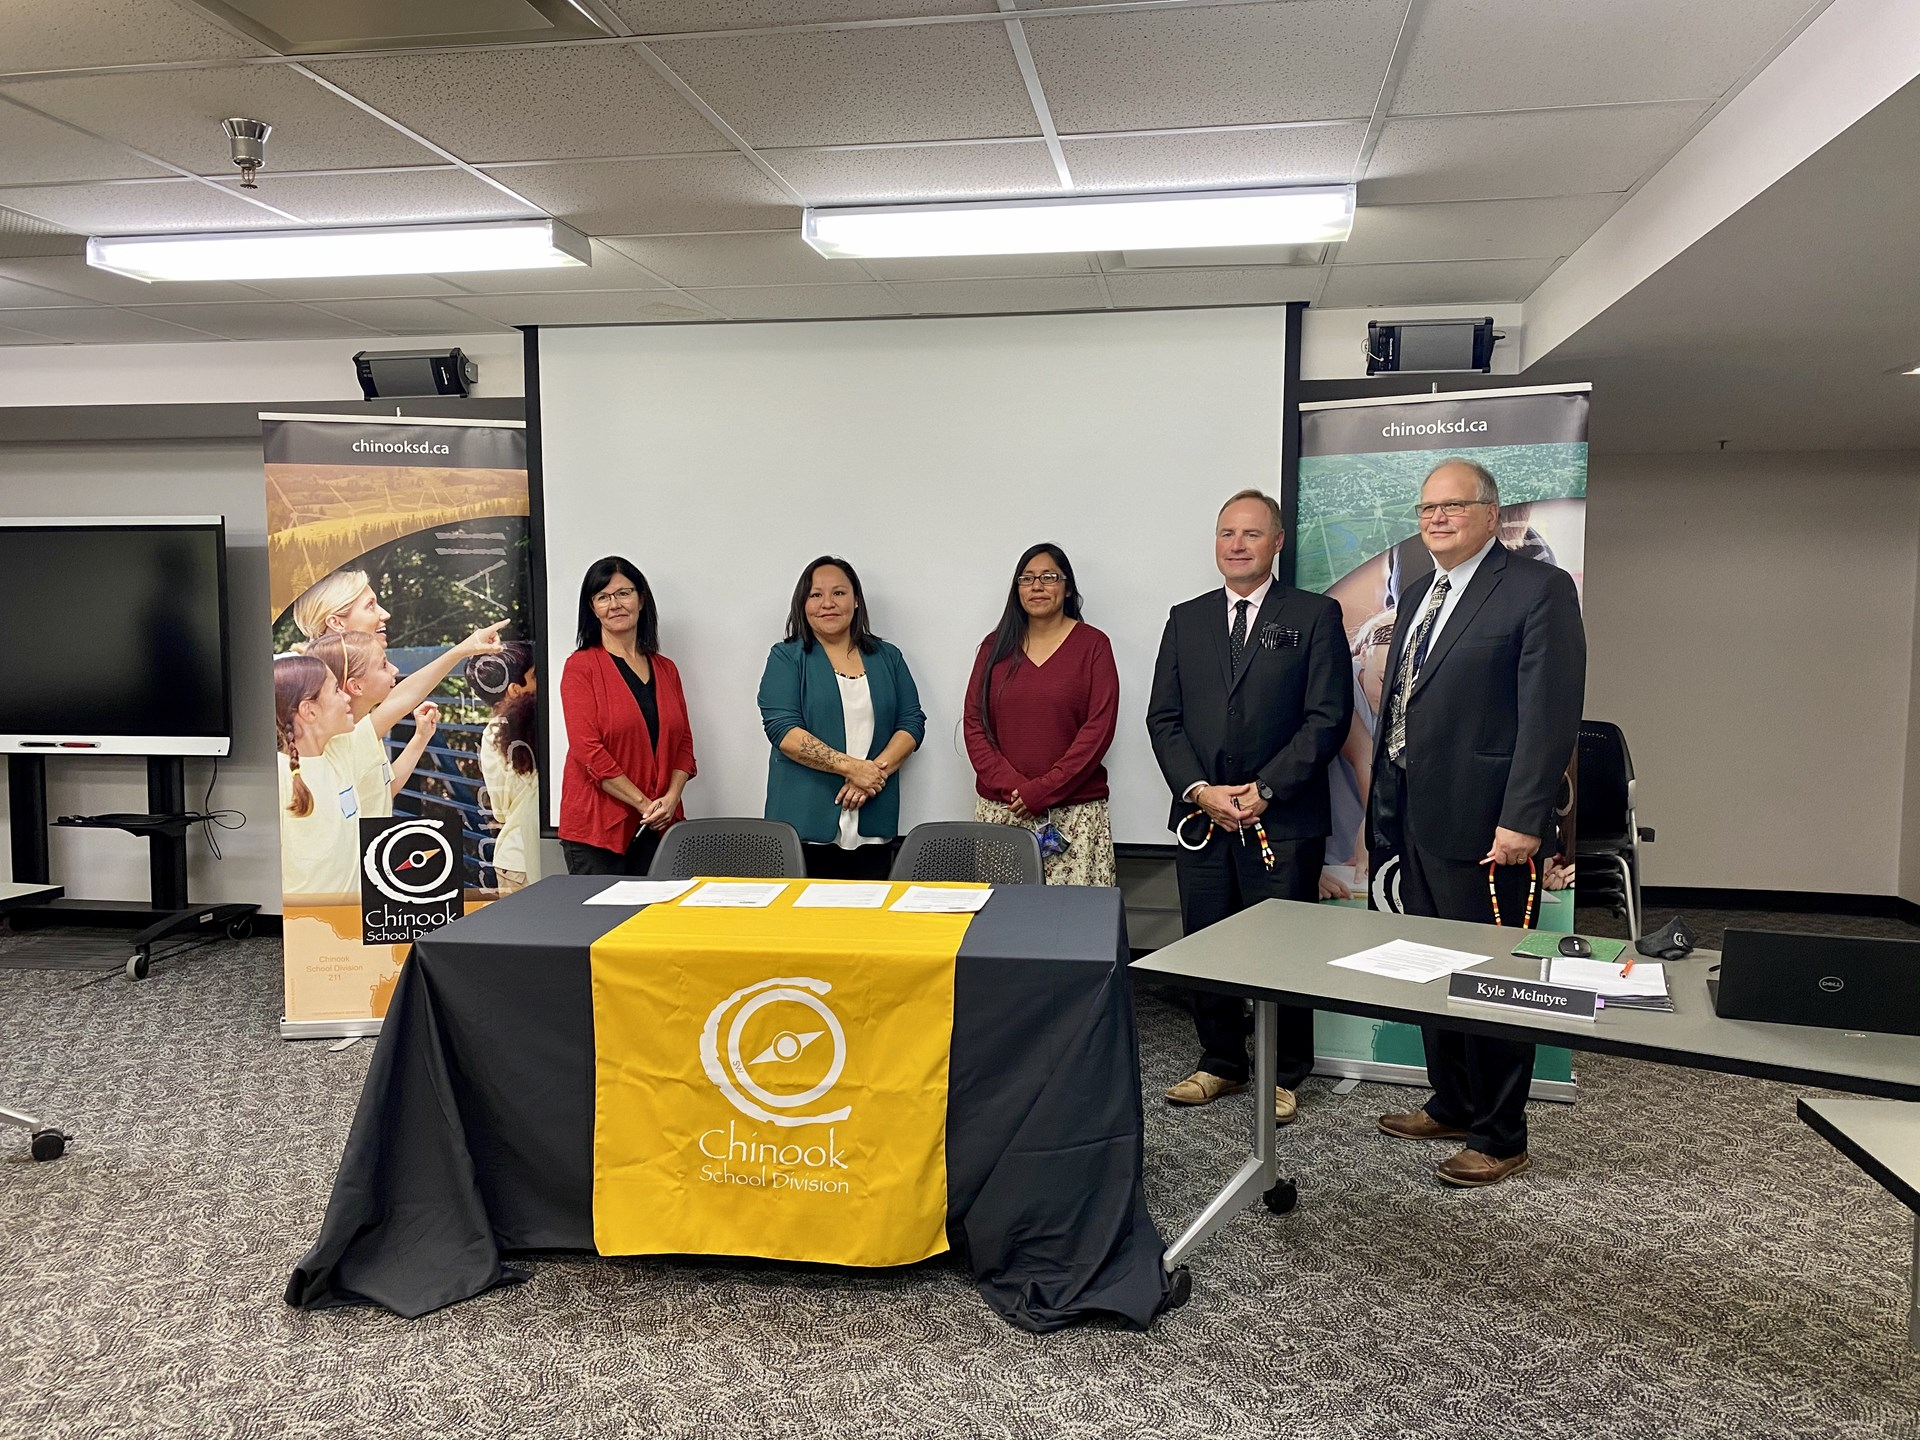 Nekaneet Chinook Ed Agreement Signing-1.JPG